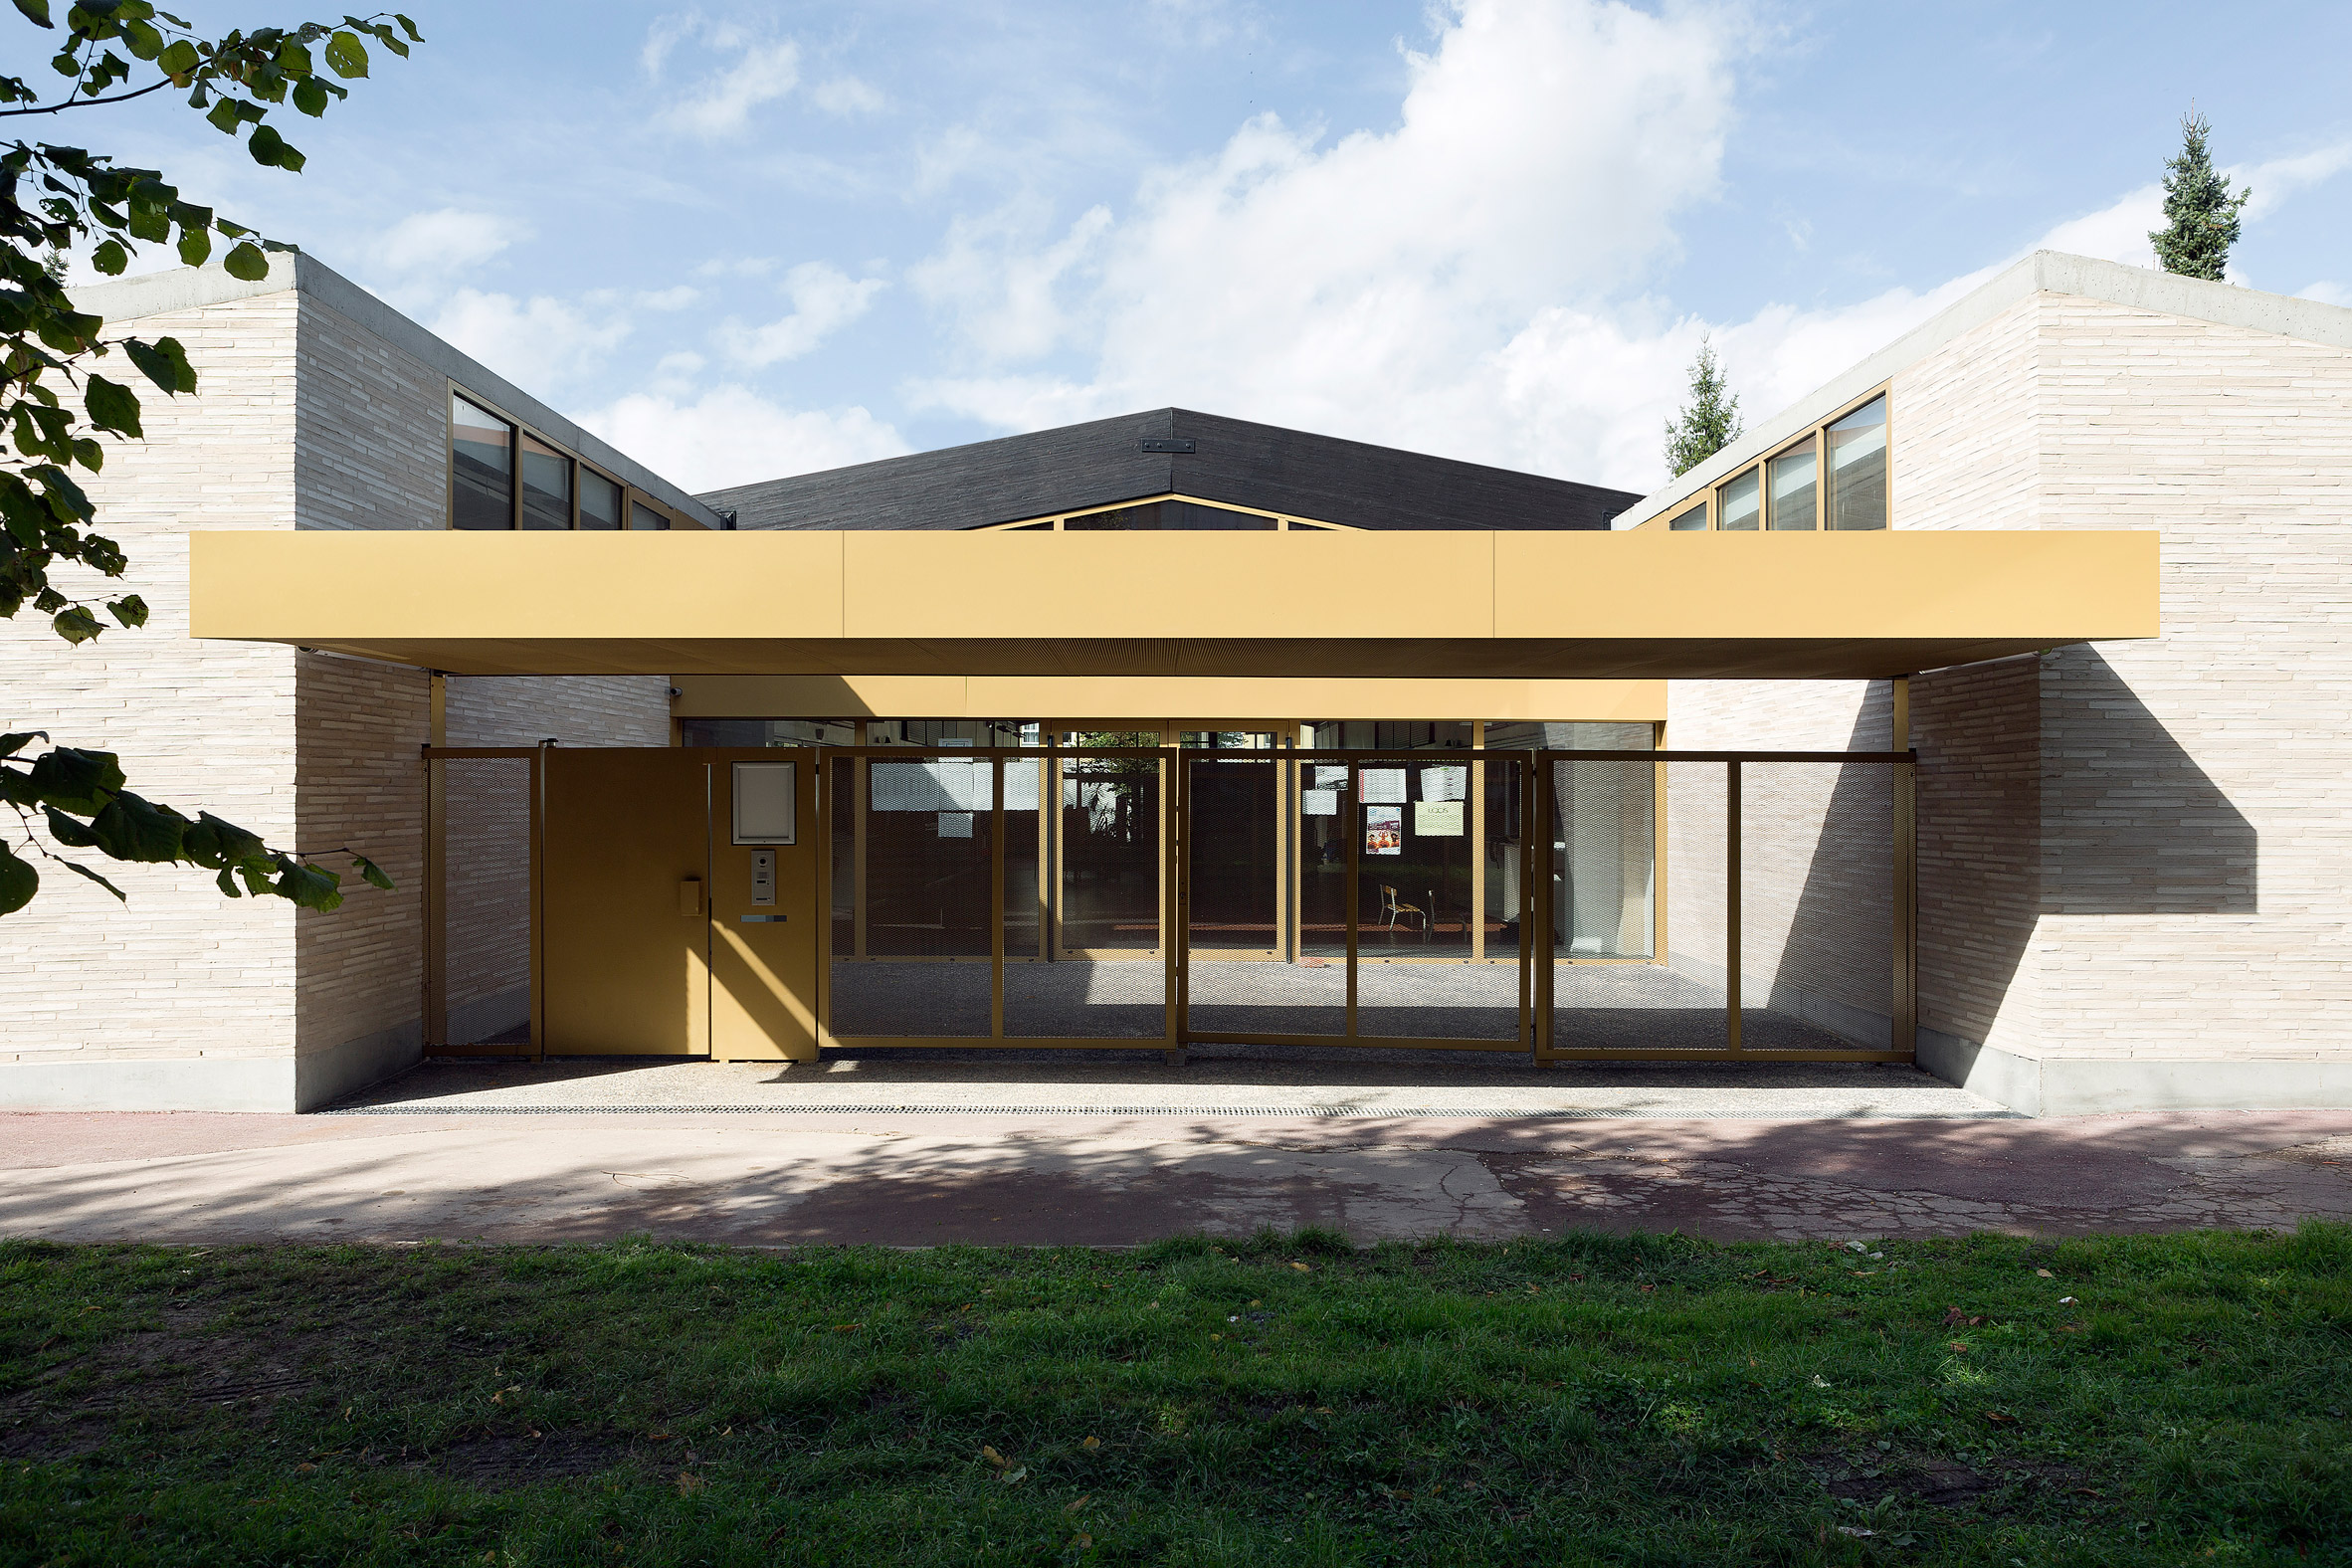 Lille school extension by LT2A features porthole-like windows and golden details